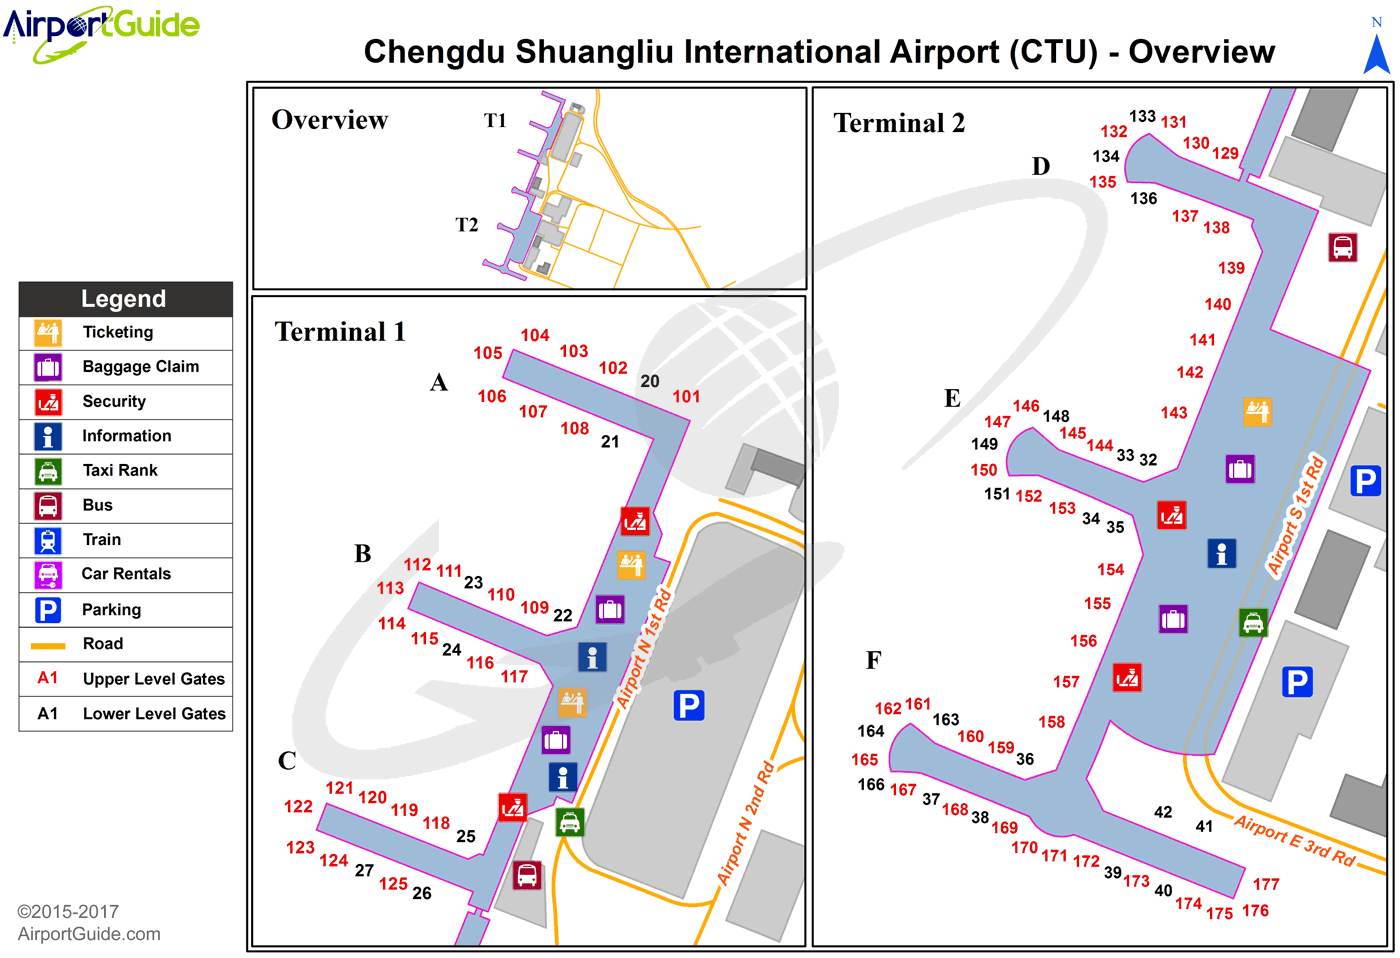 Chengdu - Chengdu Shuangliu International (CTU) Airport Terminal Map - Overview